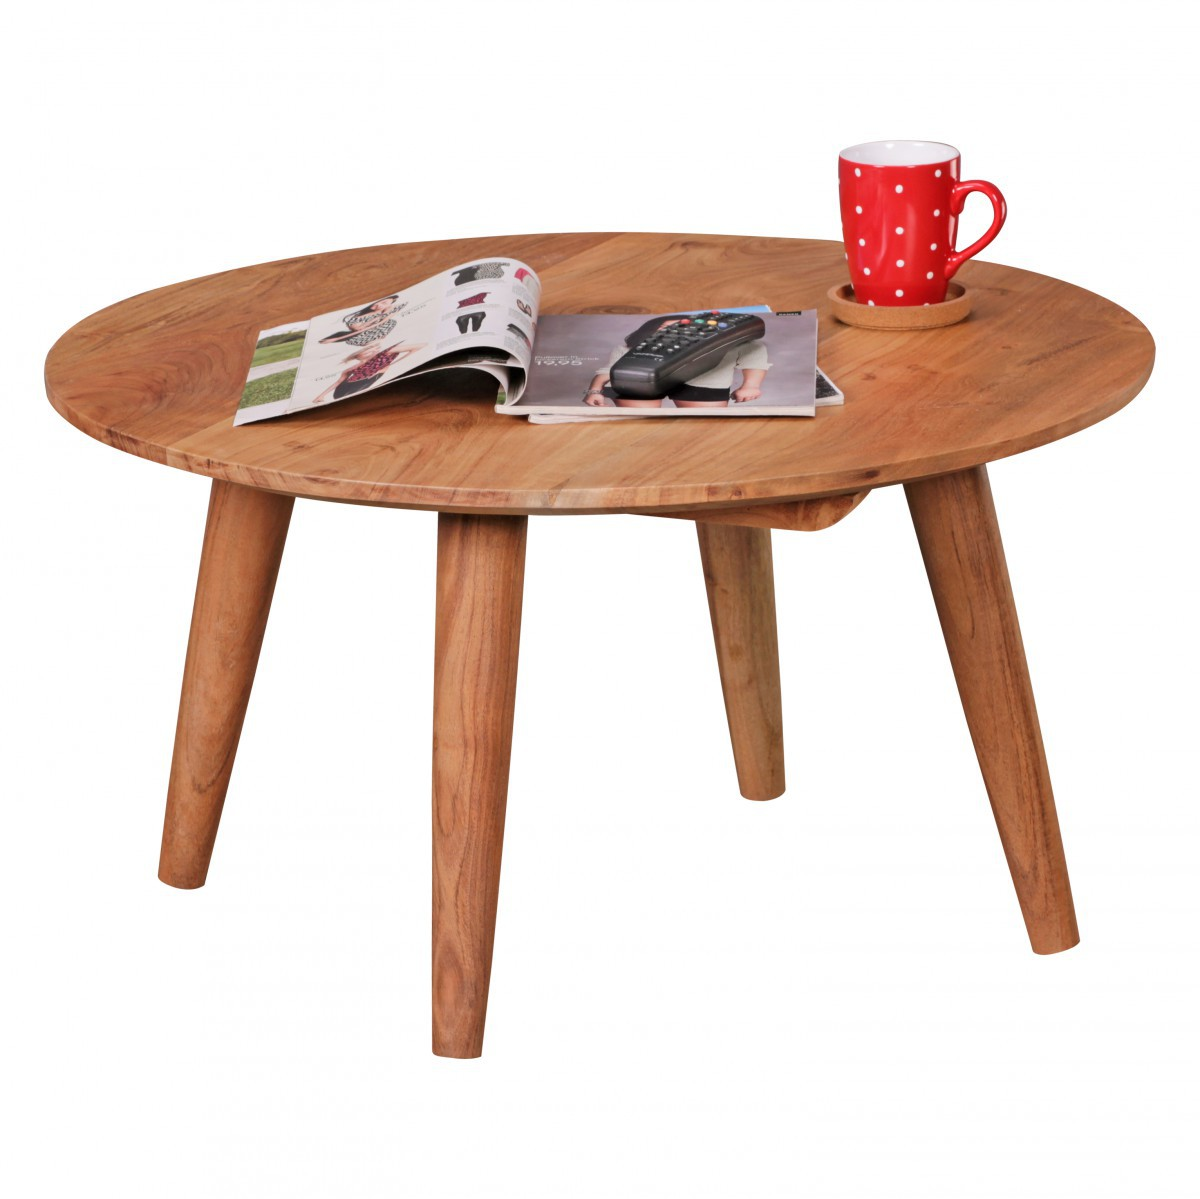 Finebuy table basse en bois massif acacia table basse for Grande table basse bois